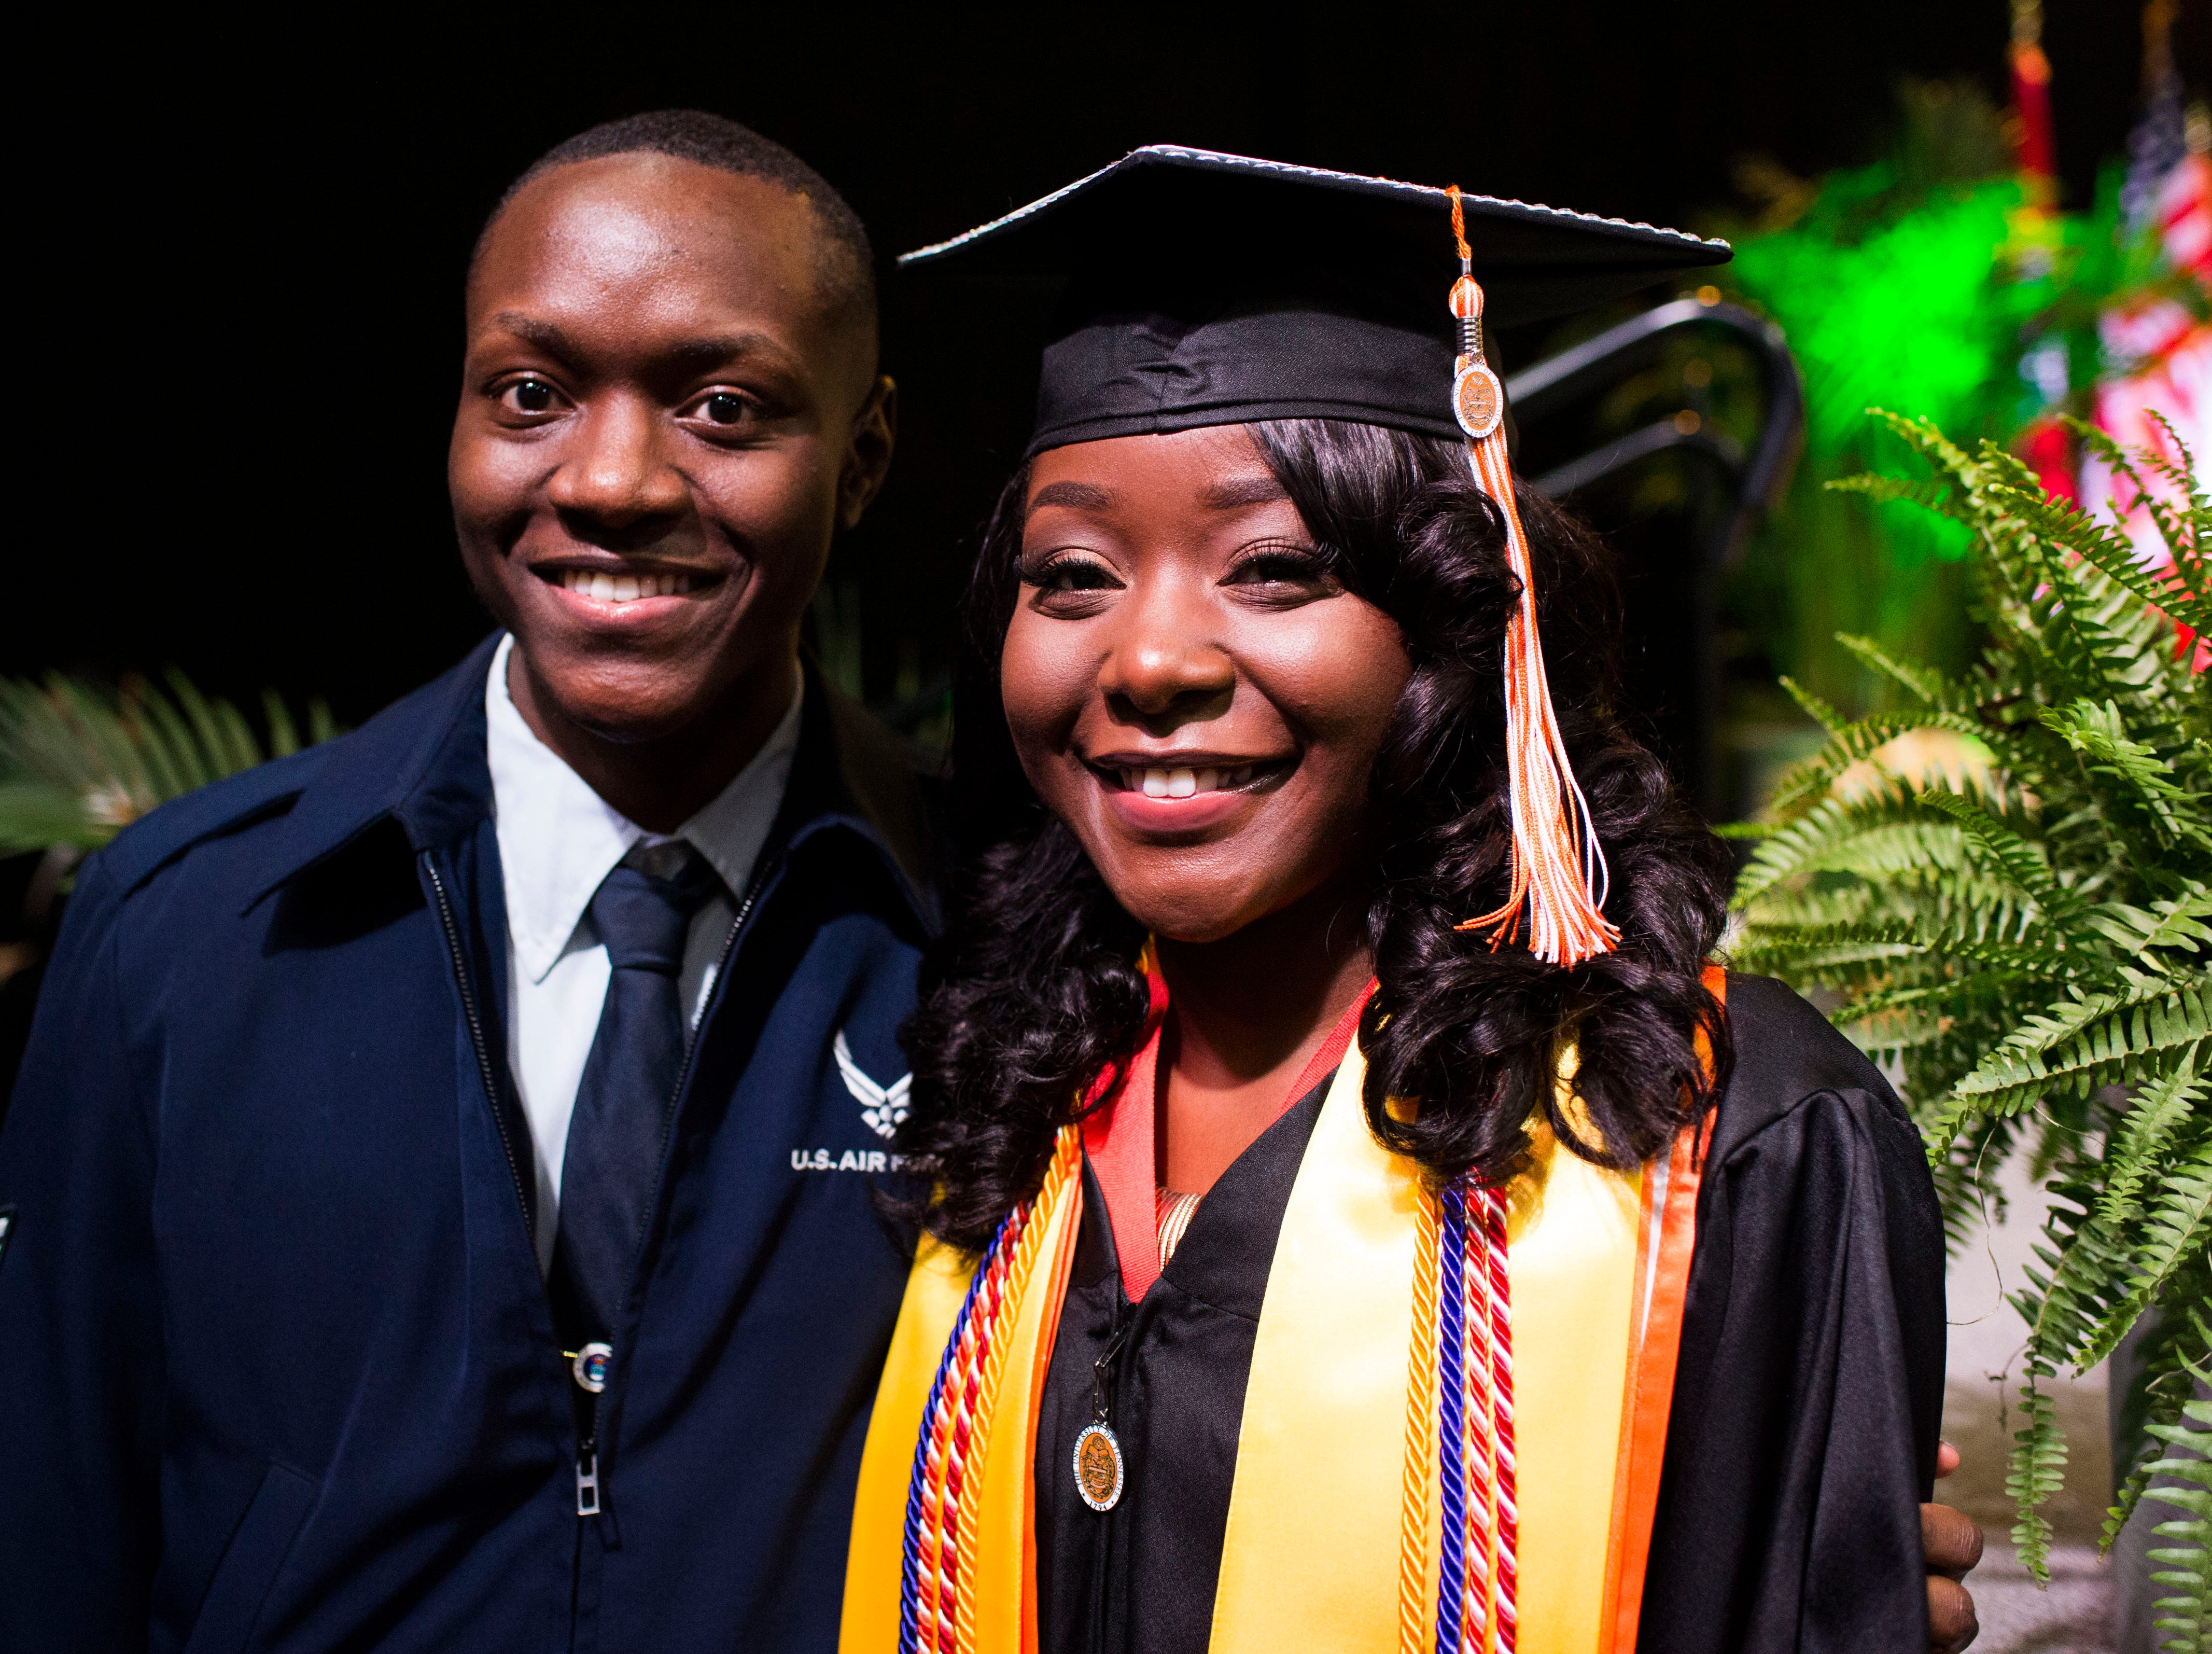 Airman Jerald Linsey Jr. poses for a photo with his sister Amaya Linsey after University of Tennessee's graduation in Thompson-Boling Arena Friday, Dec. 14, 2018. Jerald, who had not seen his sister for a year, surprised Amaya after she crossed the stage to receive her diploma.